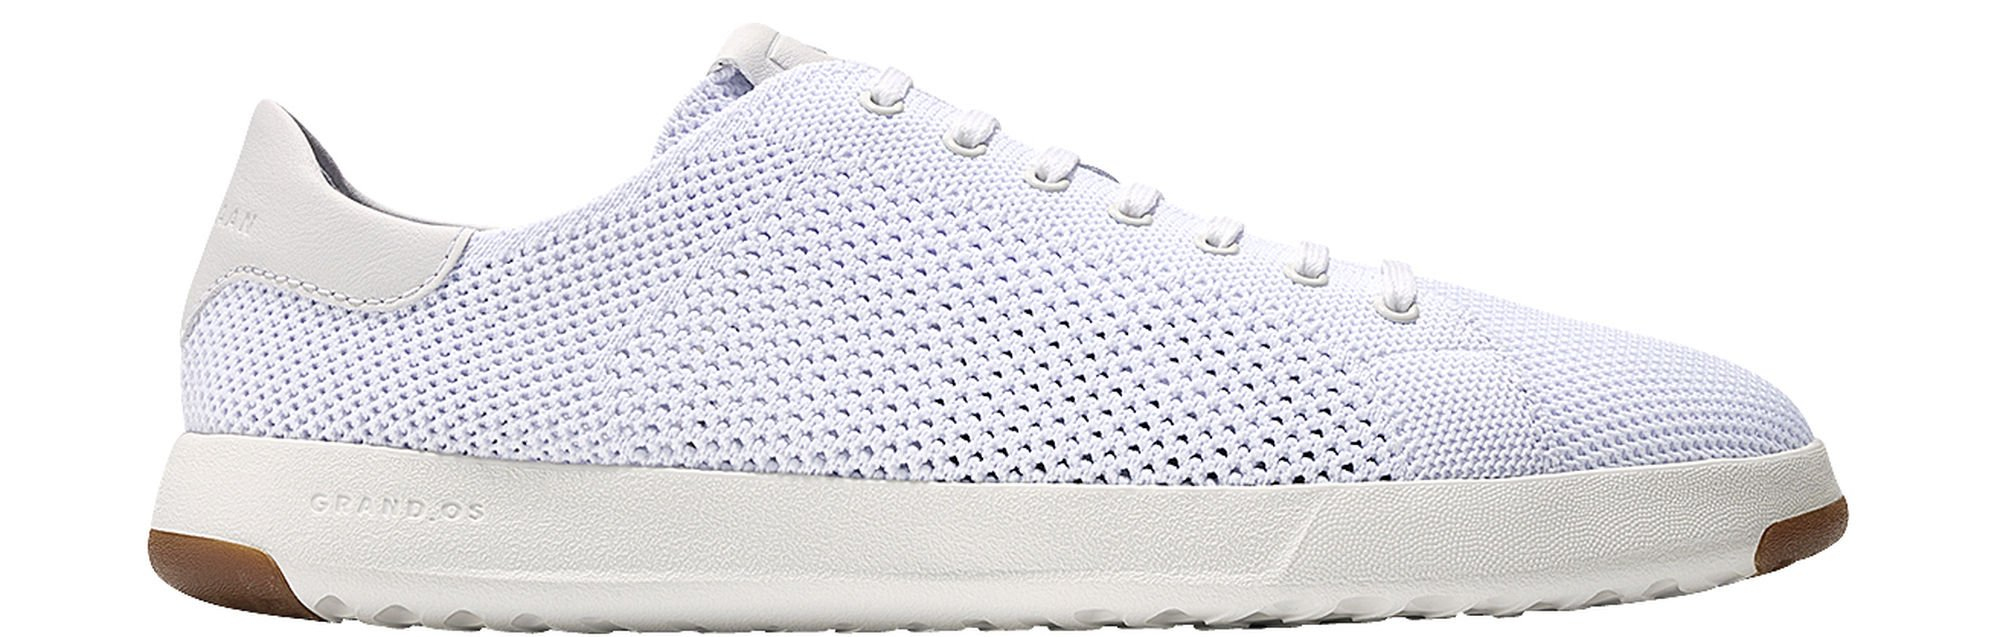 Cole Haan Women's Grandpro Tennis Sneaker with Stitchlite 6 Optic White Knit